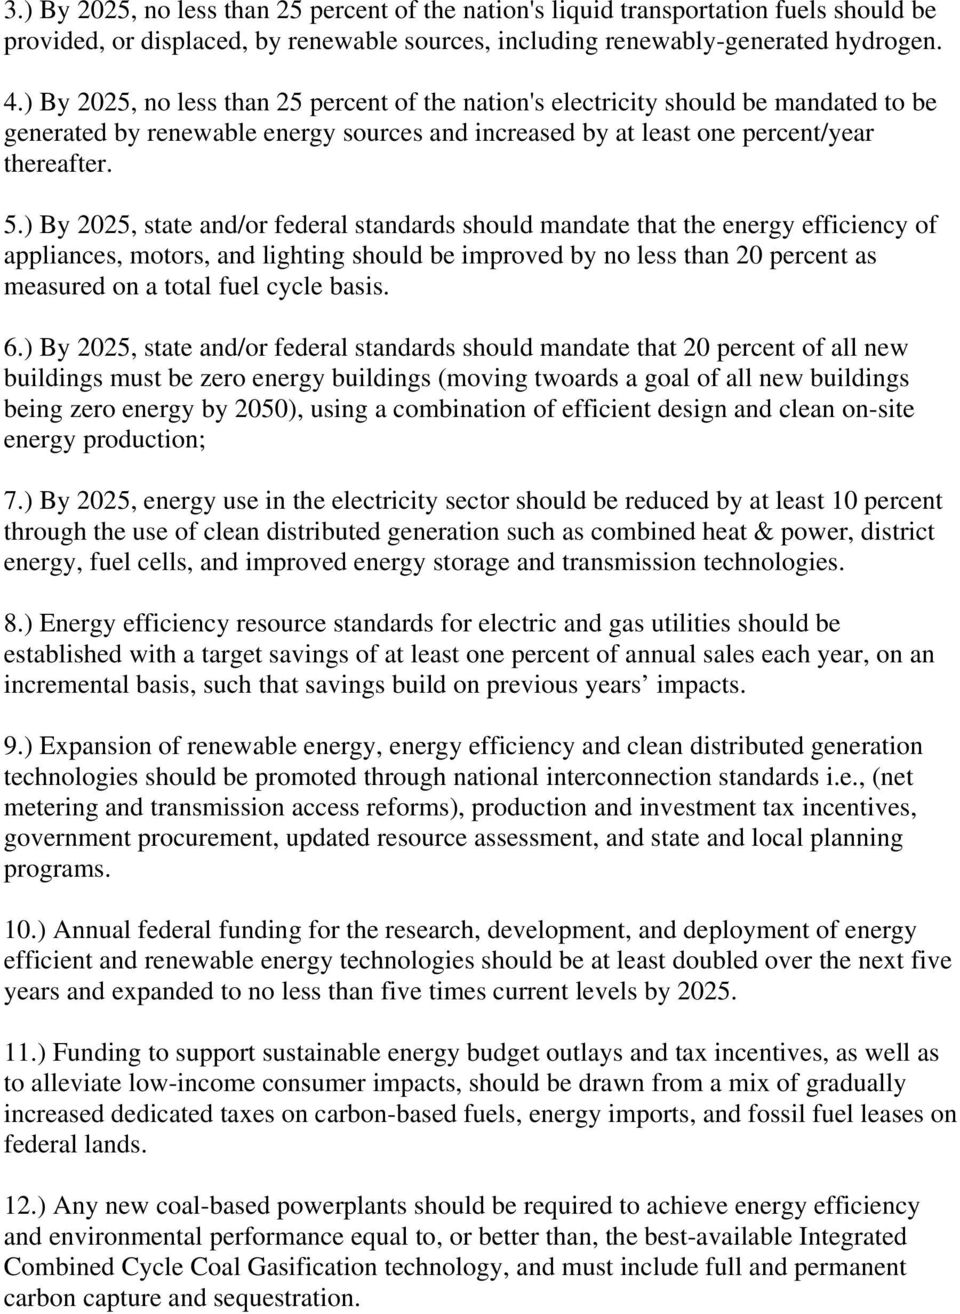 ) By 2025, state and/or federal standards should mandate that the energy efficiency of appliances, motors, and lighting should be improved by no less than 20 percent as measured on a total fuel cycle